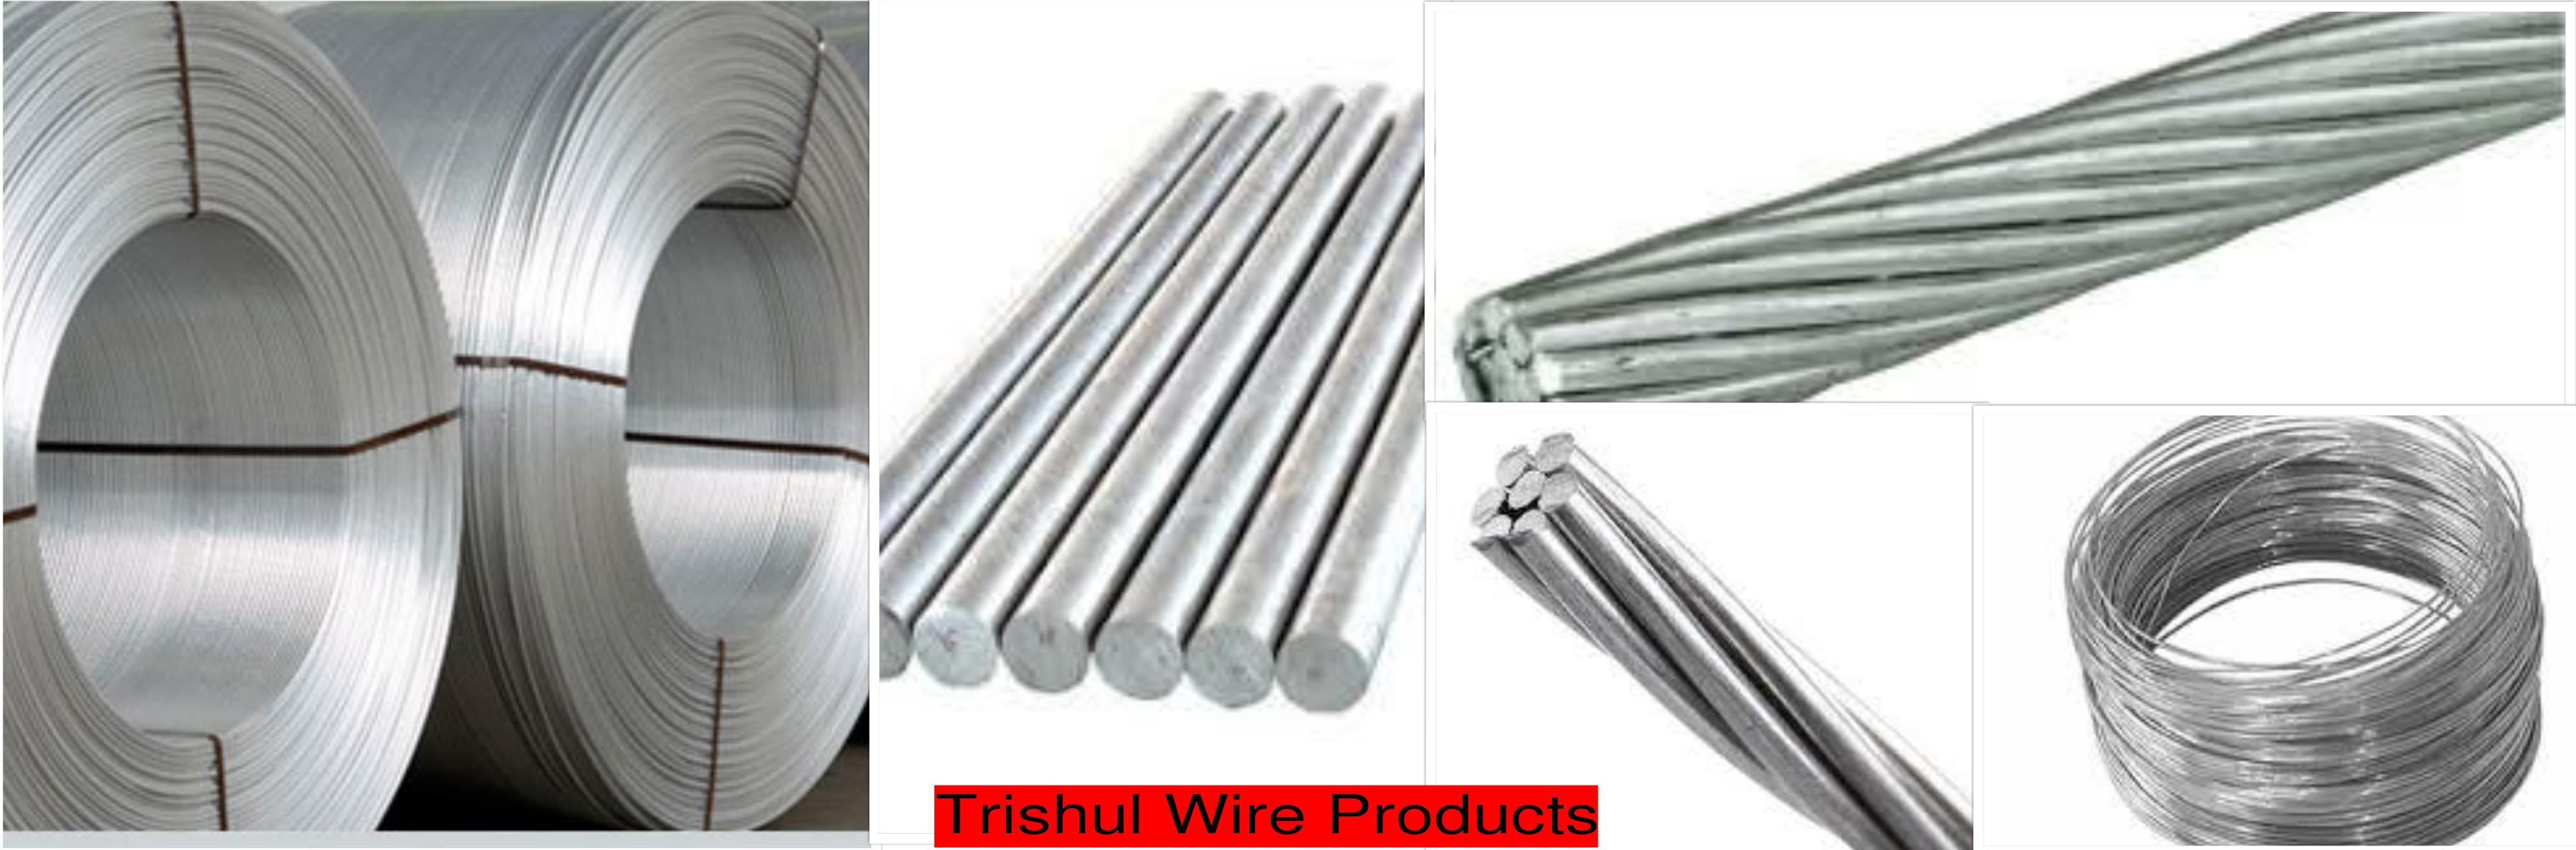 Trishul Wires Product